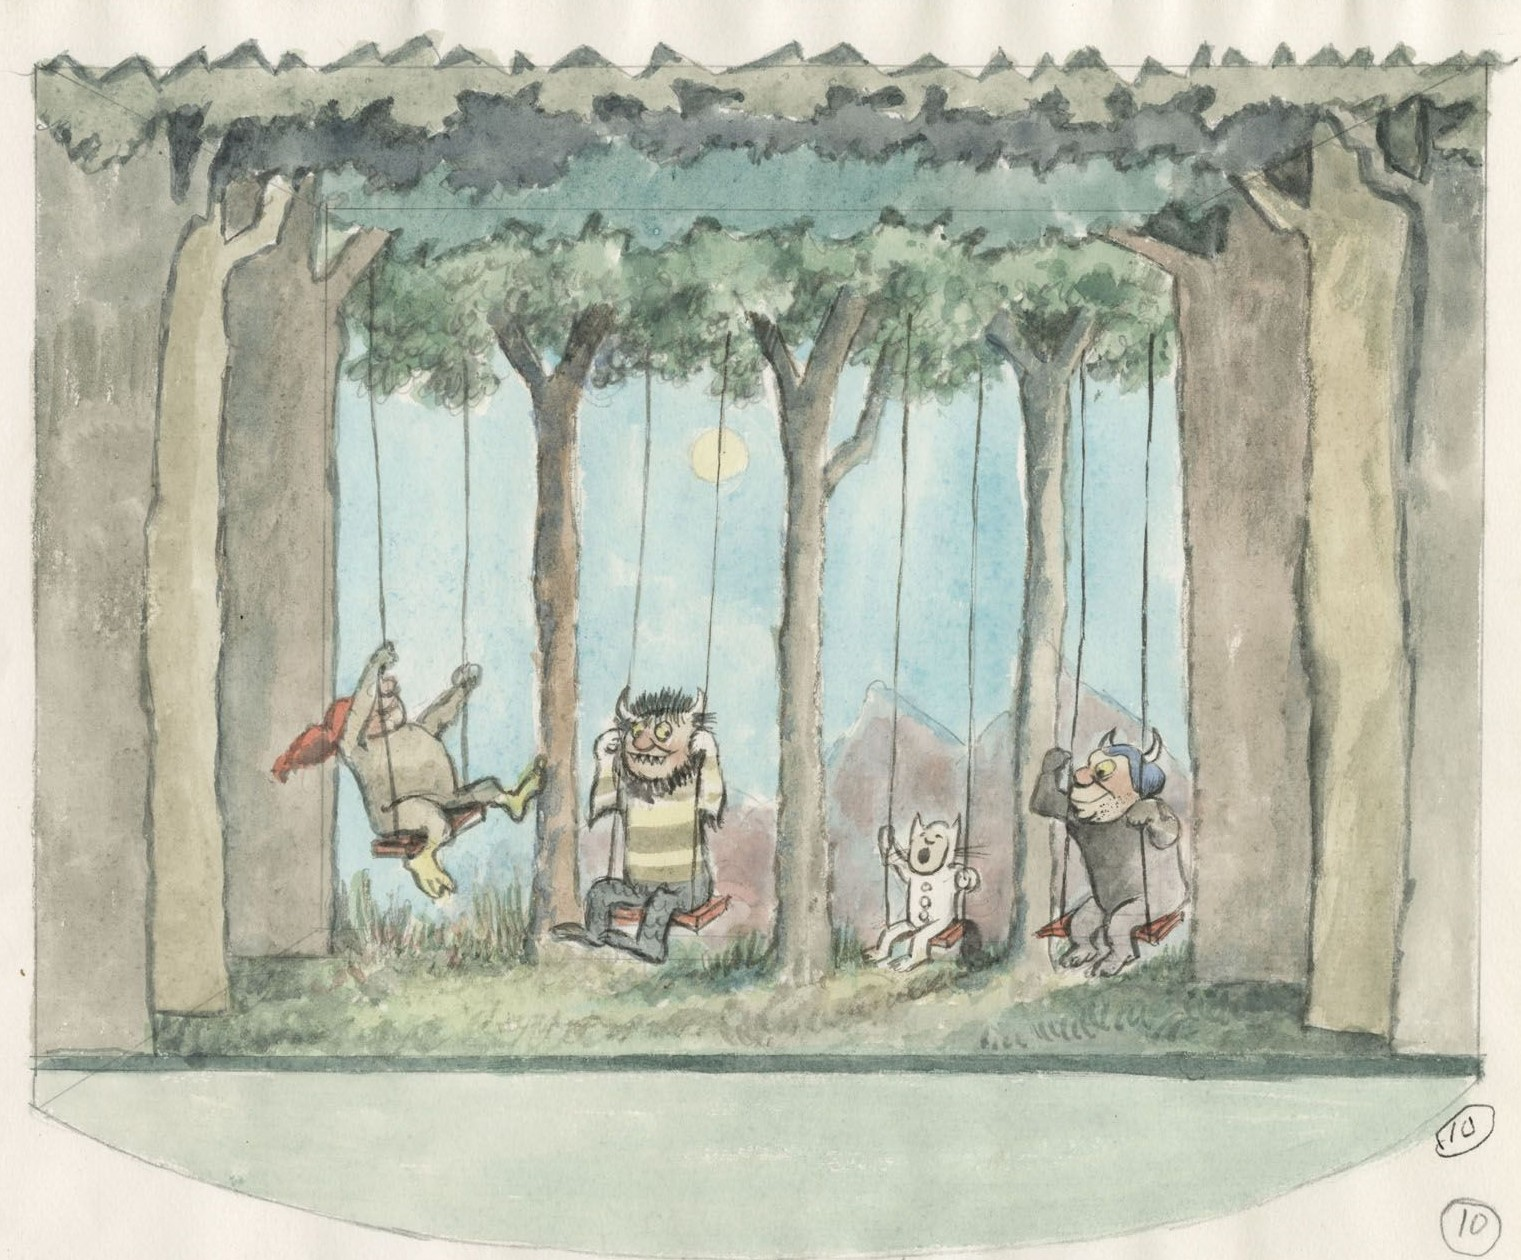 Family Workshop: The Library Where the Wild Things Are: Maurice Sendak at the Morgan at The Morgan Library & Museum